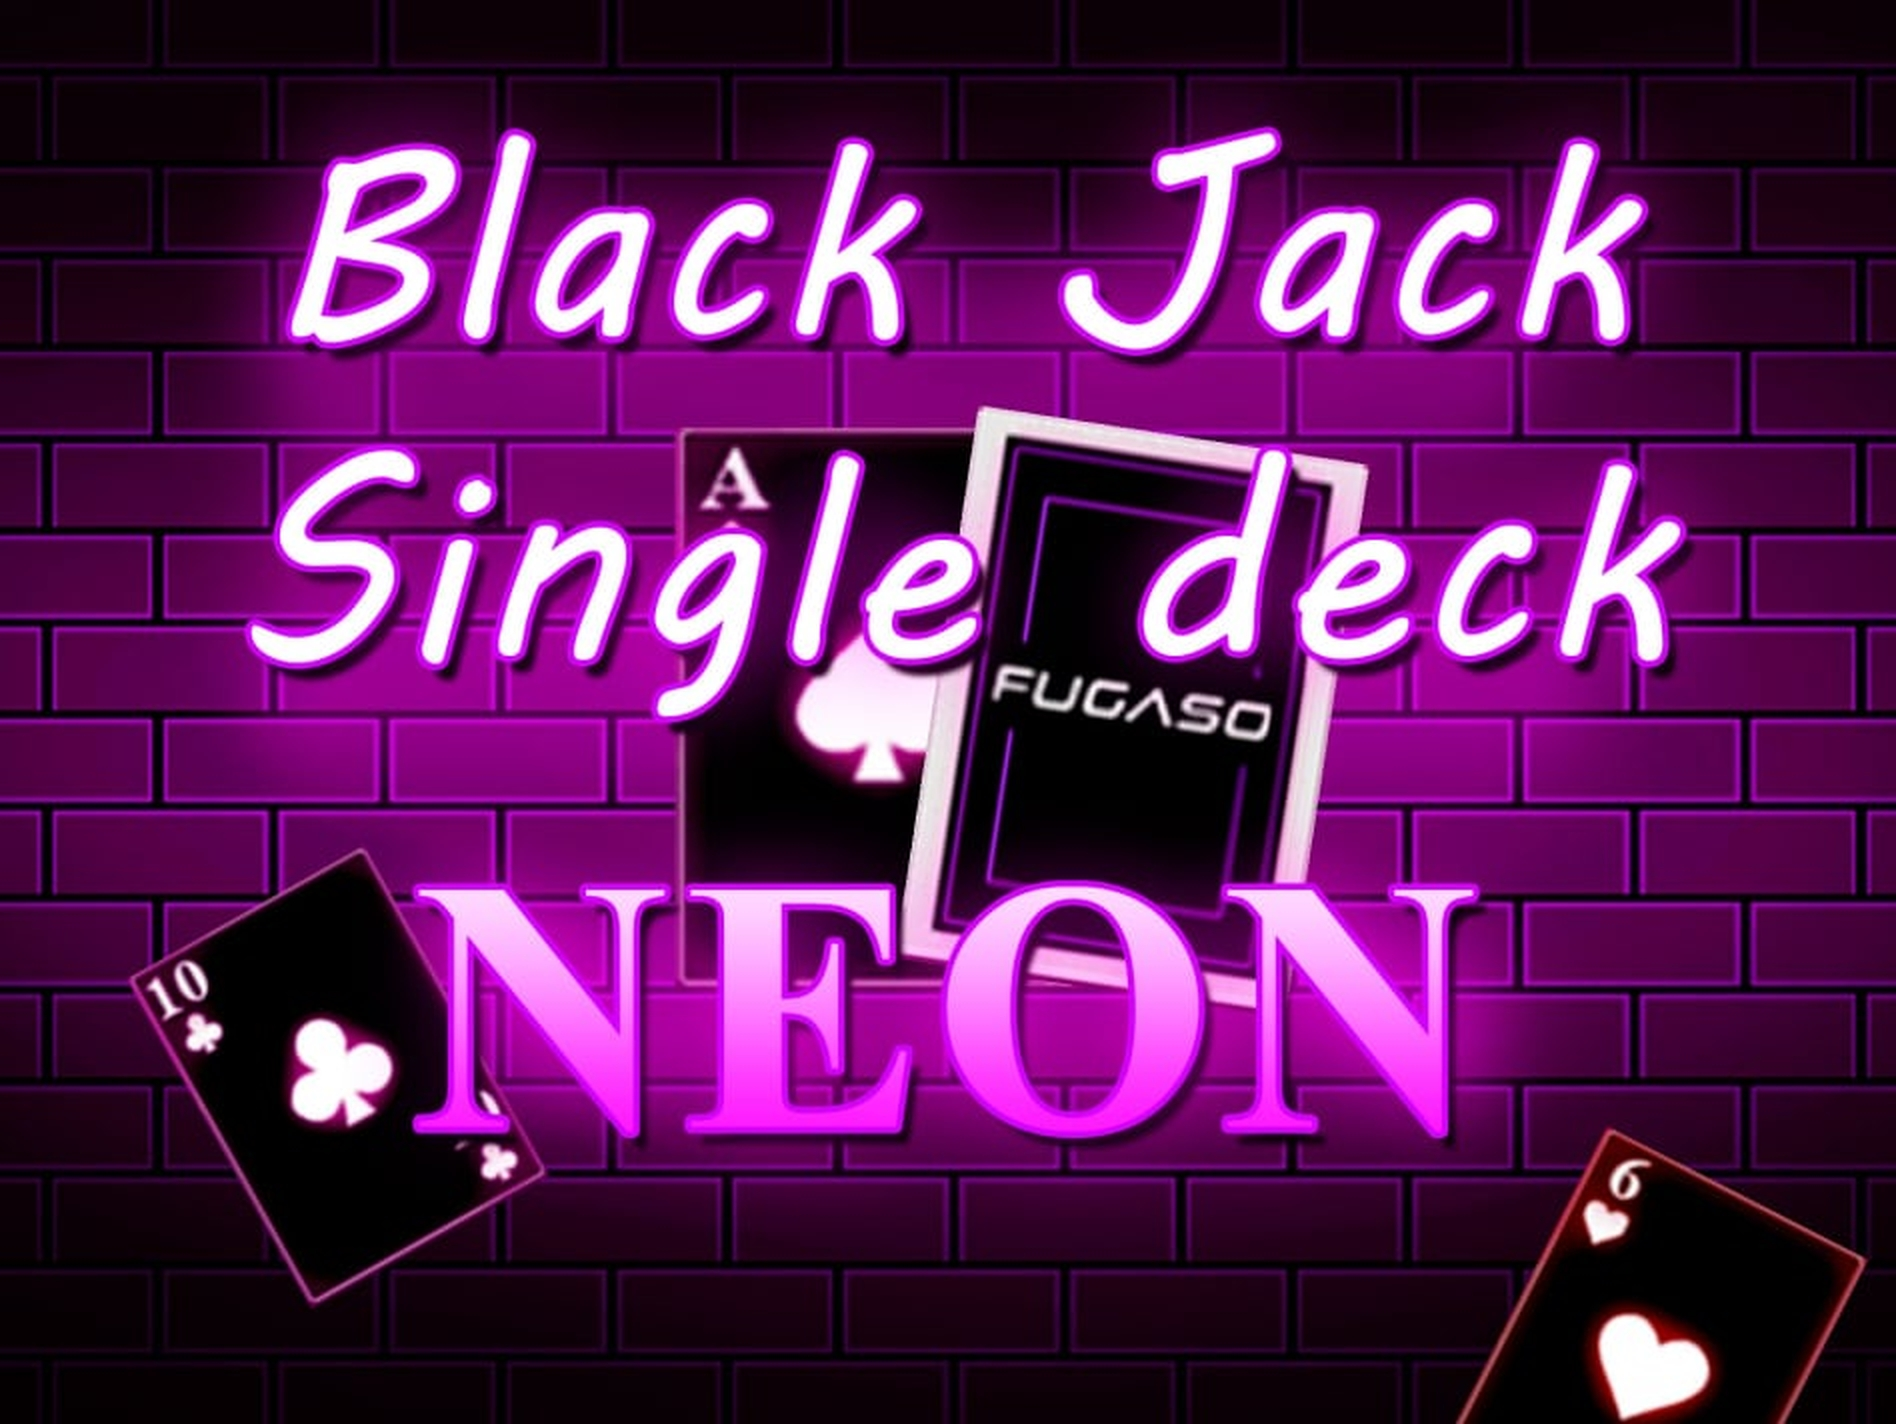 The Neon Blackjack Single Deck Online Slot Demo Game by Fugaso